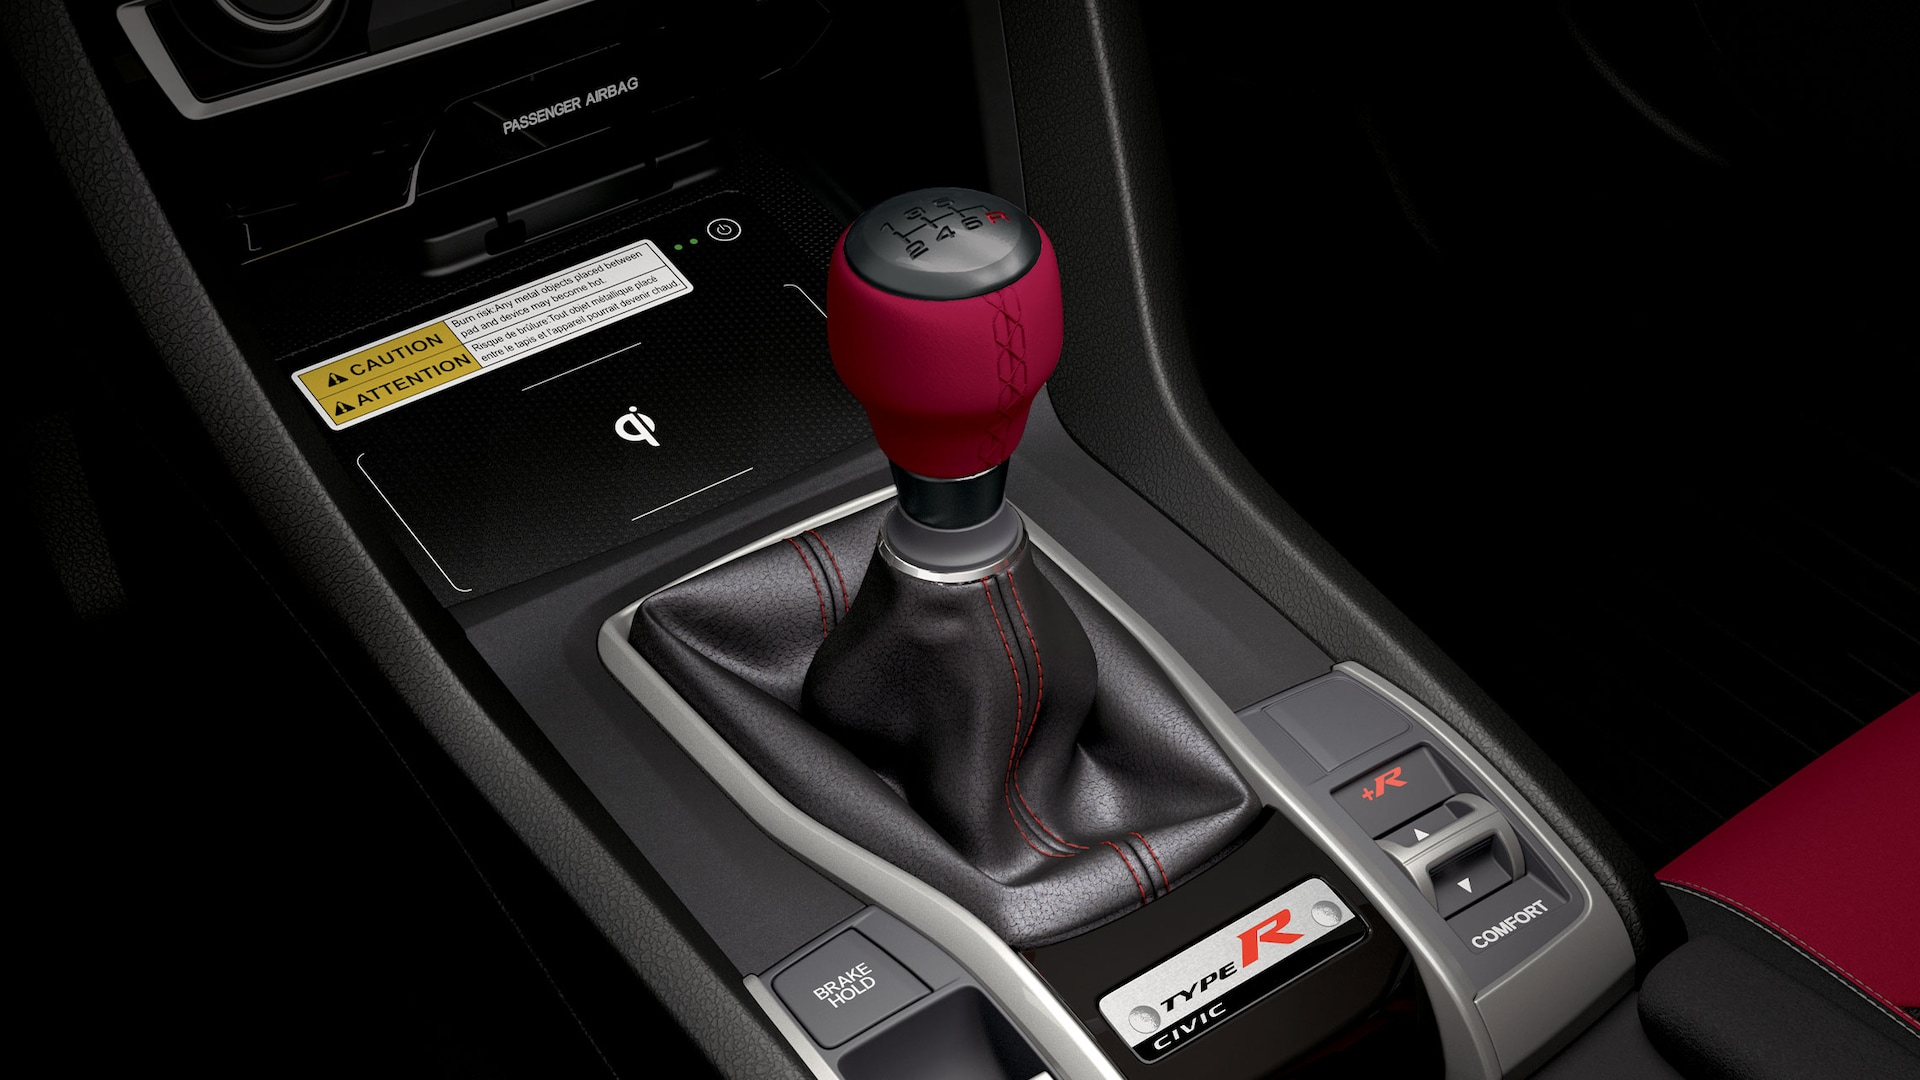 Detail view of Honda Genuine Accessory shift knob in the 2021 Honda Civic Type R.